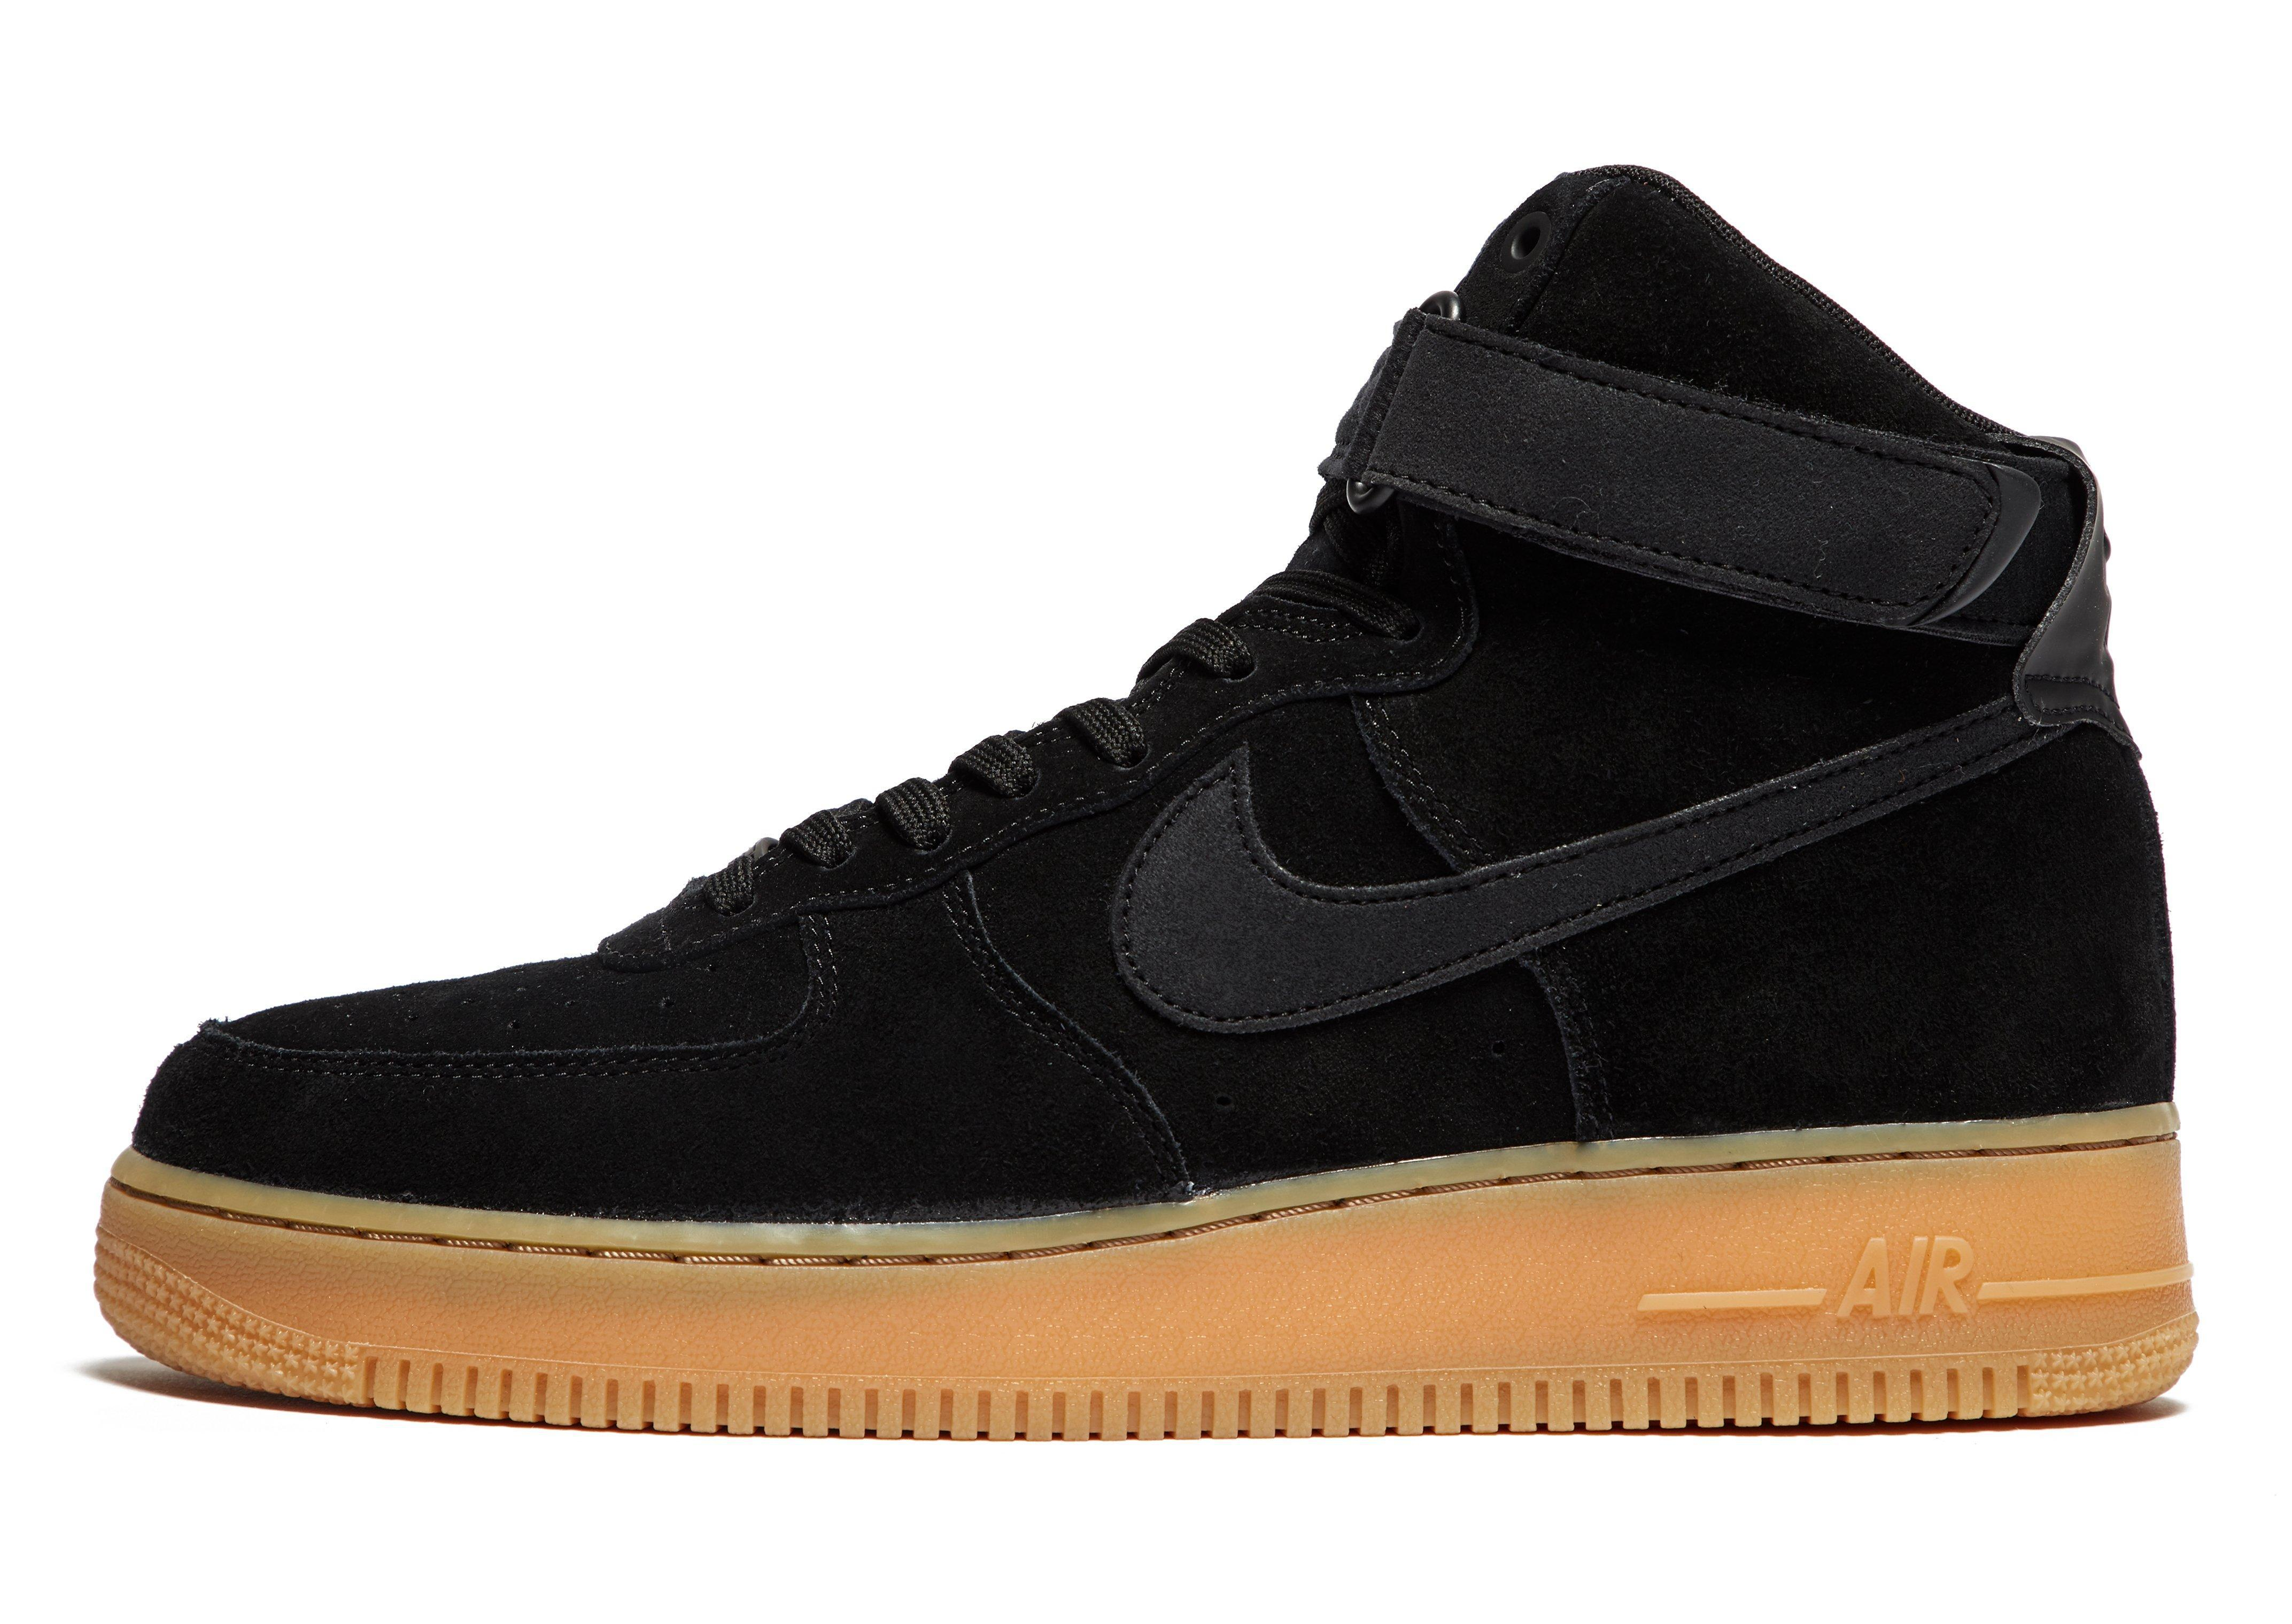 0abf85389b3 Nike Air Force 1 Mid Lv8 in Black for Men - Lyst